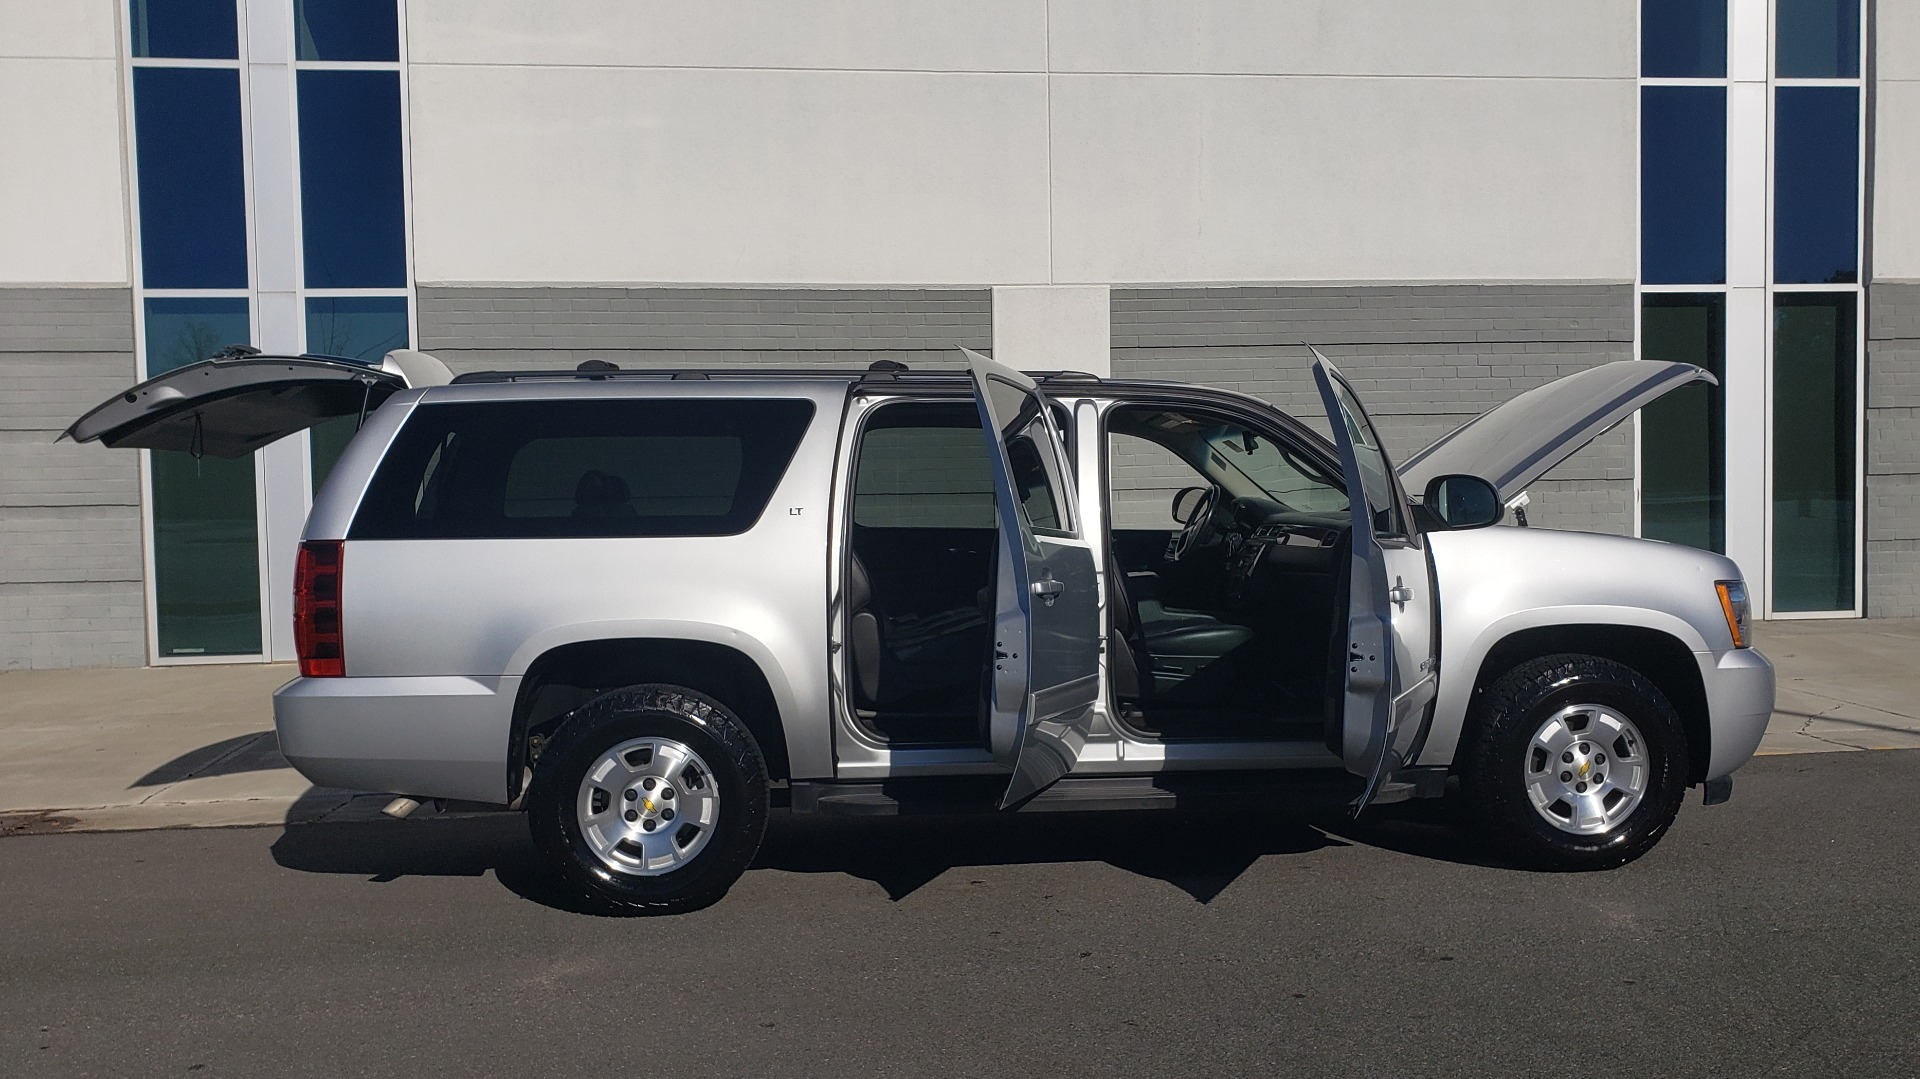 Used 2013 Chevrolet SUBURBAN LT / 2WD / 5.3L V8 / 6-SPD AUTO / LEATHER 3-ROW SEATS for sale Sold at Formula Imports in Charlotte NC 28227 13